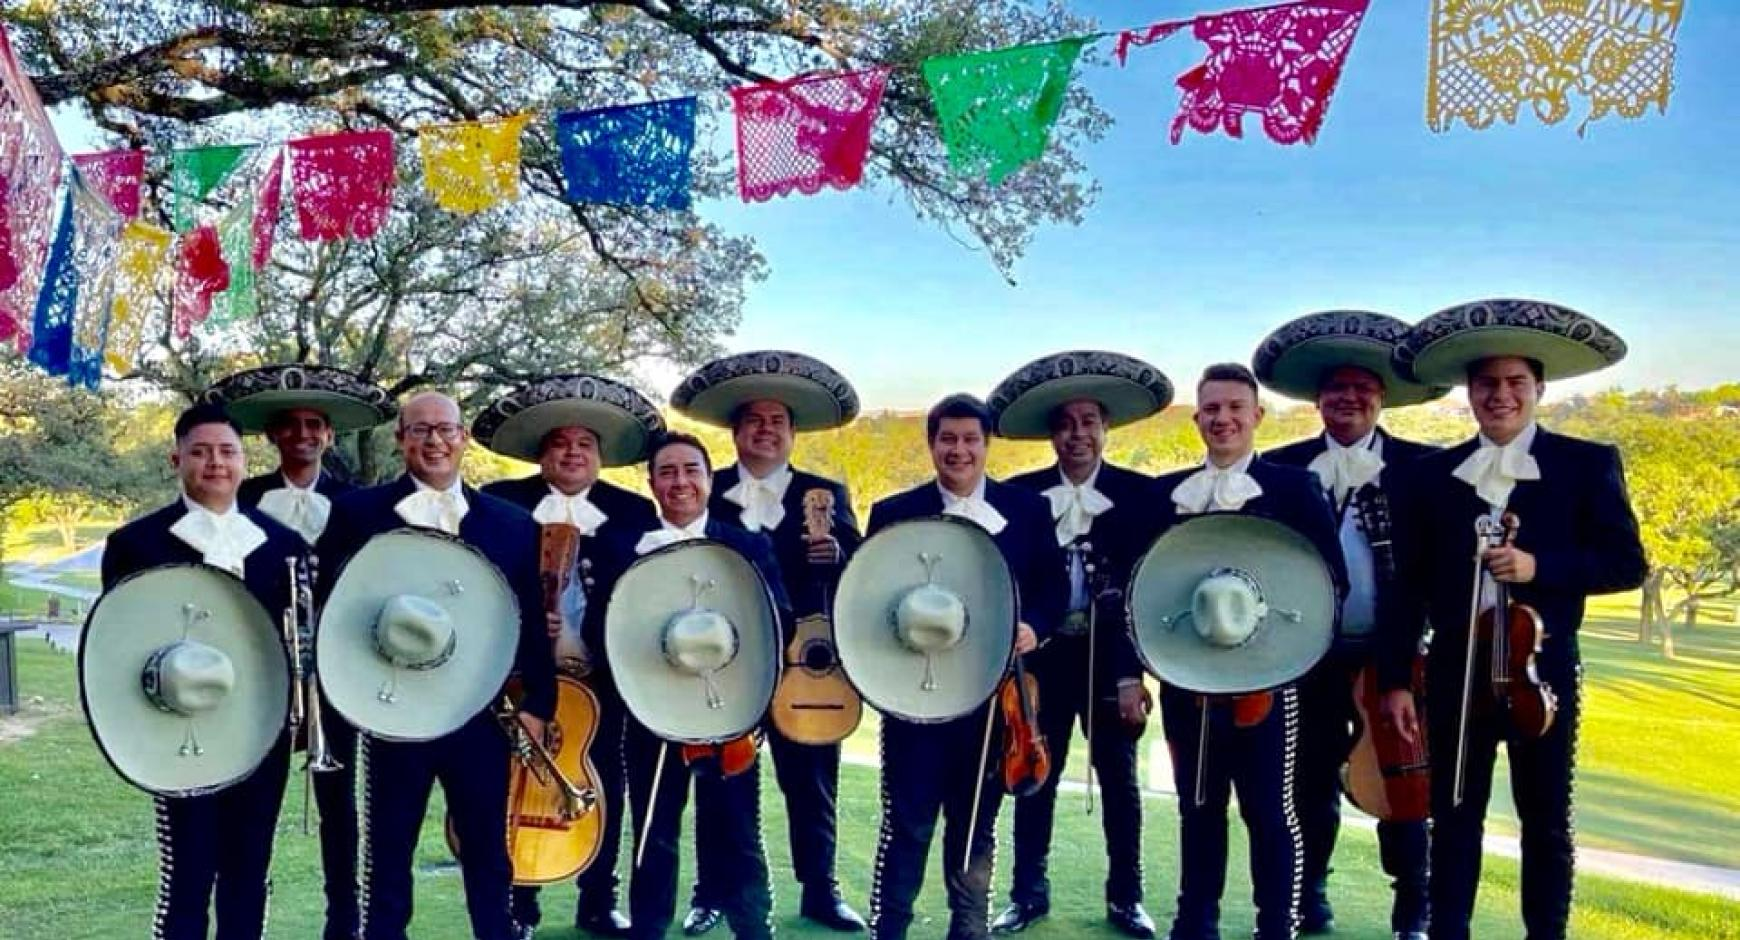 Mariachi Los Galleros in a line, holding their instruments